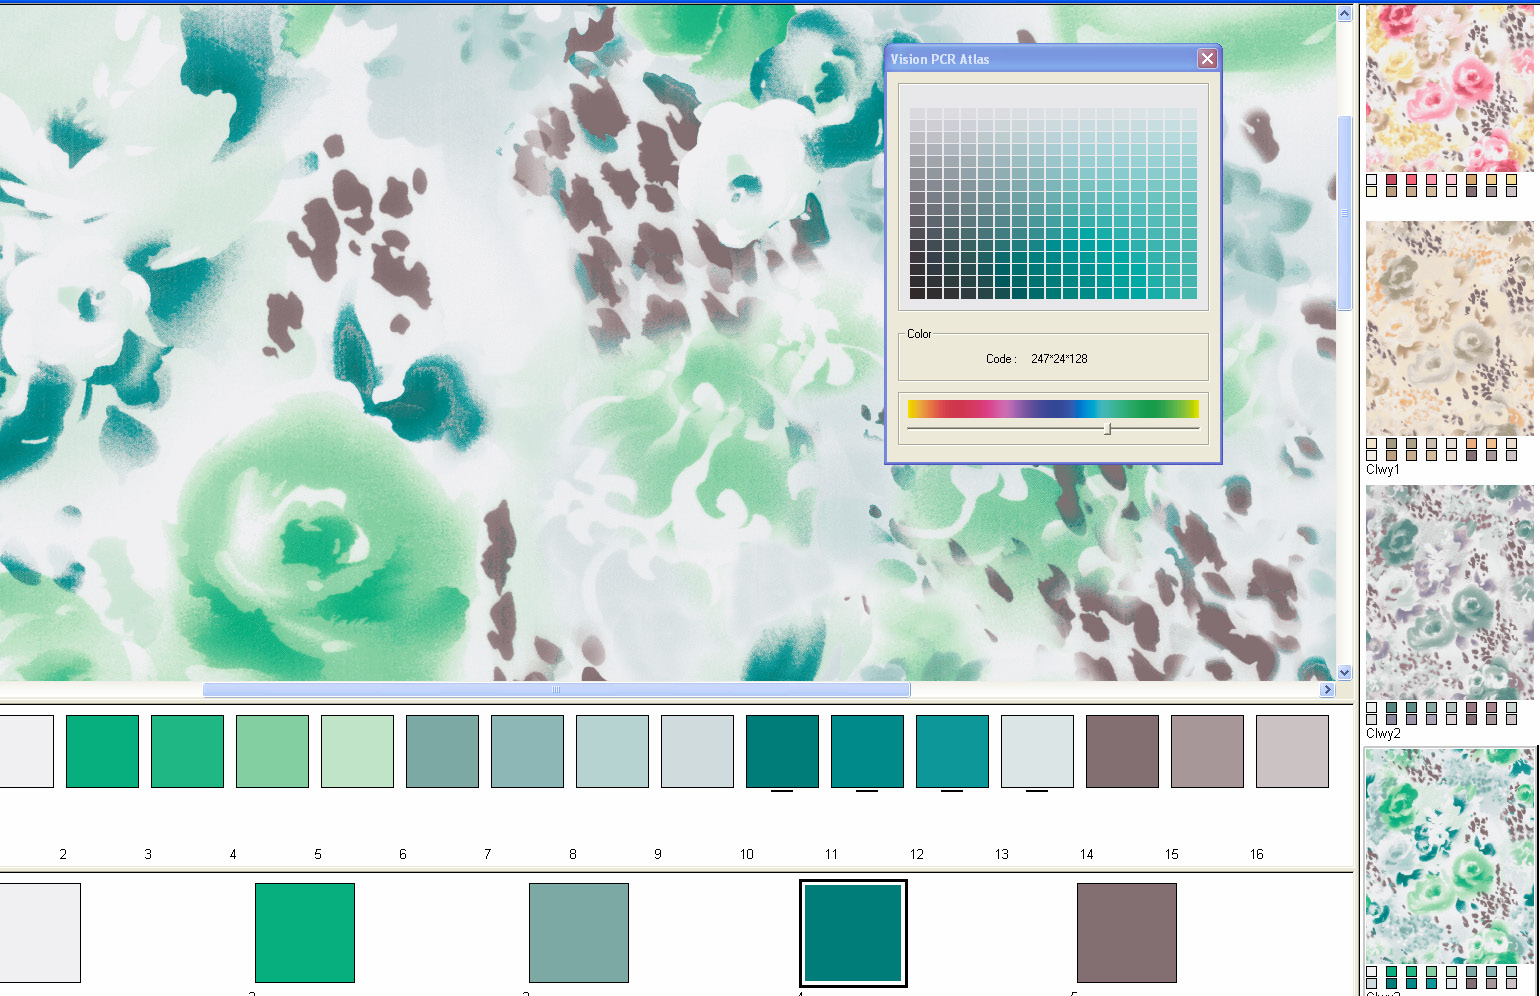 screen shot showing how to create unlimited custom color palettes per season or collection